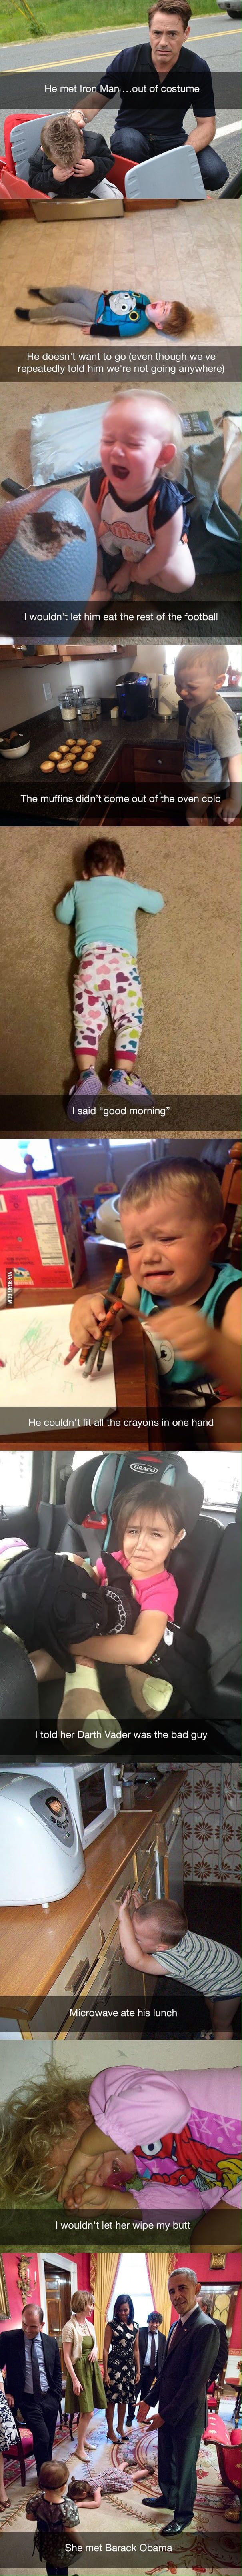 Stupid reasons why kids cry - Imgur